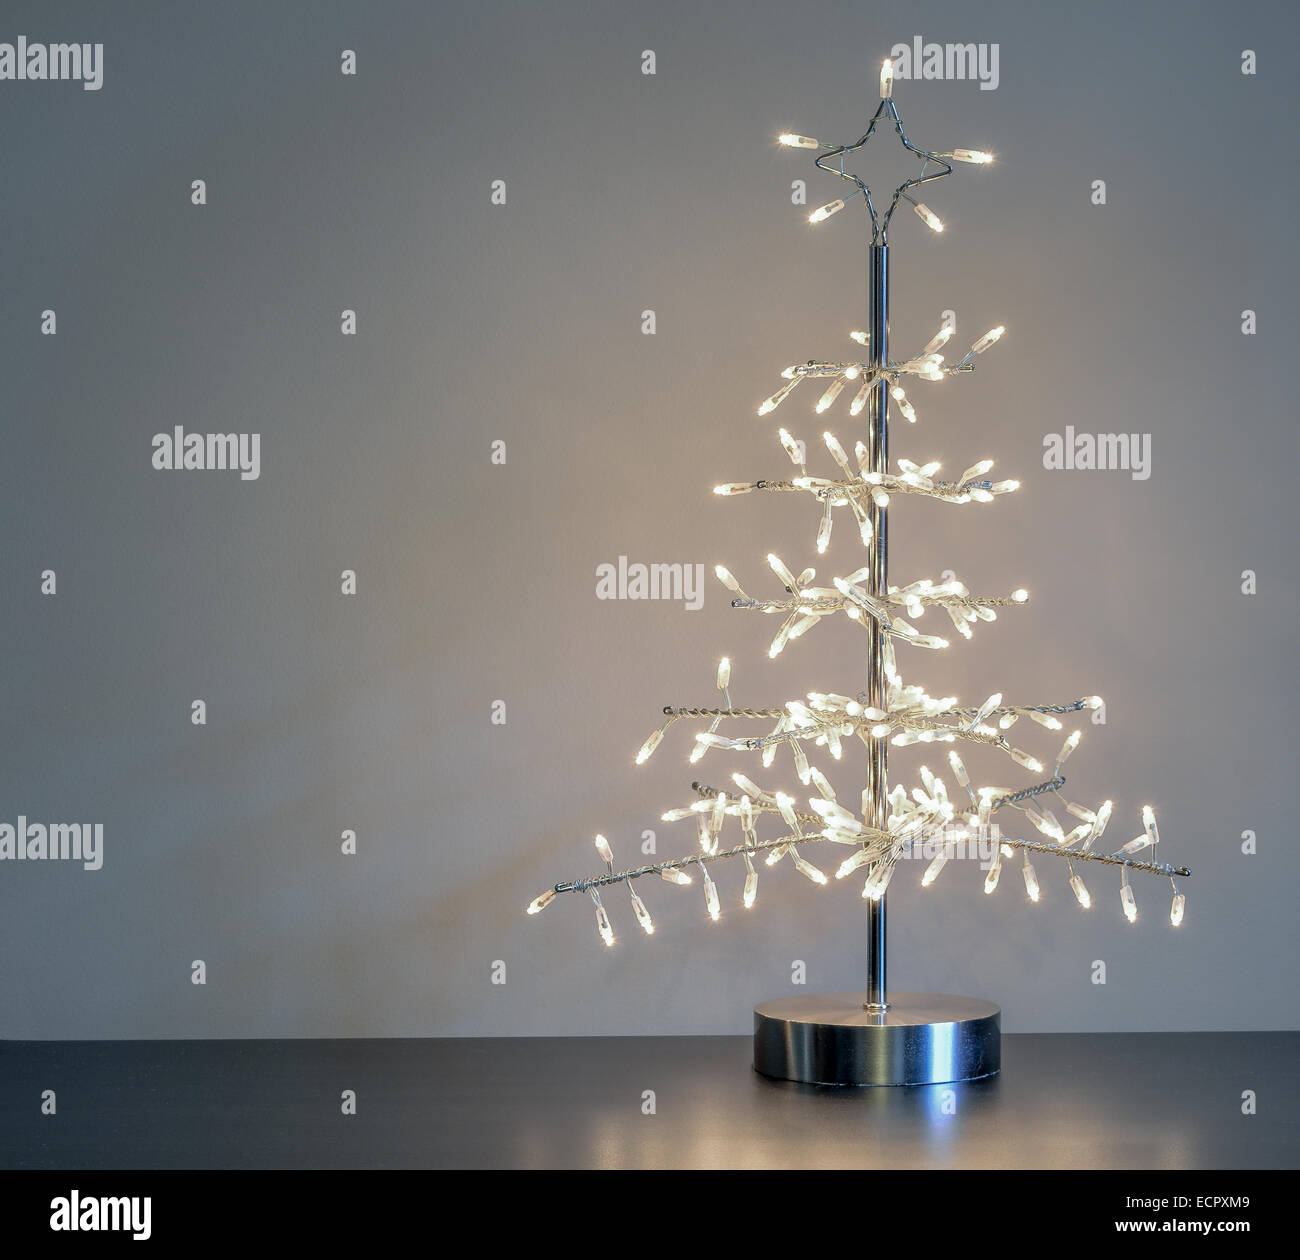 Silver Metal Minimalist Christmas Tree Ornament With White Lights Stock Photo Alamy